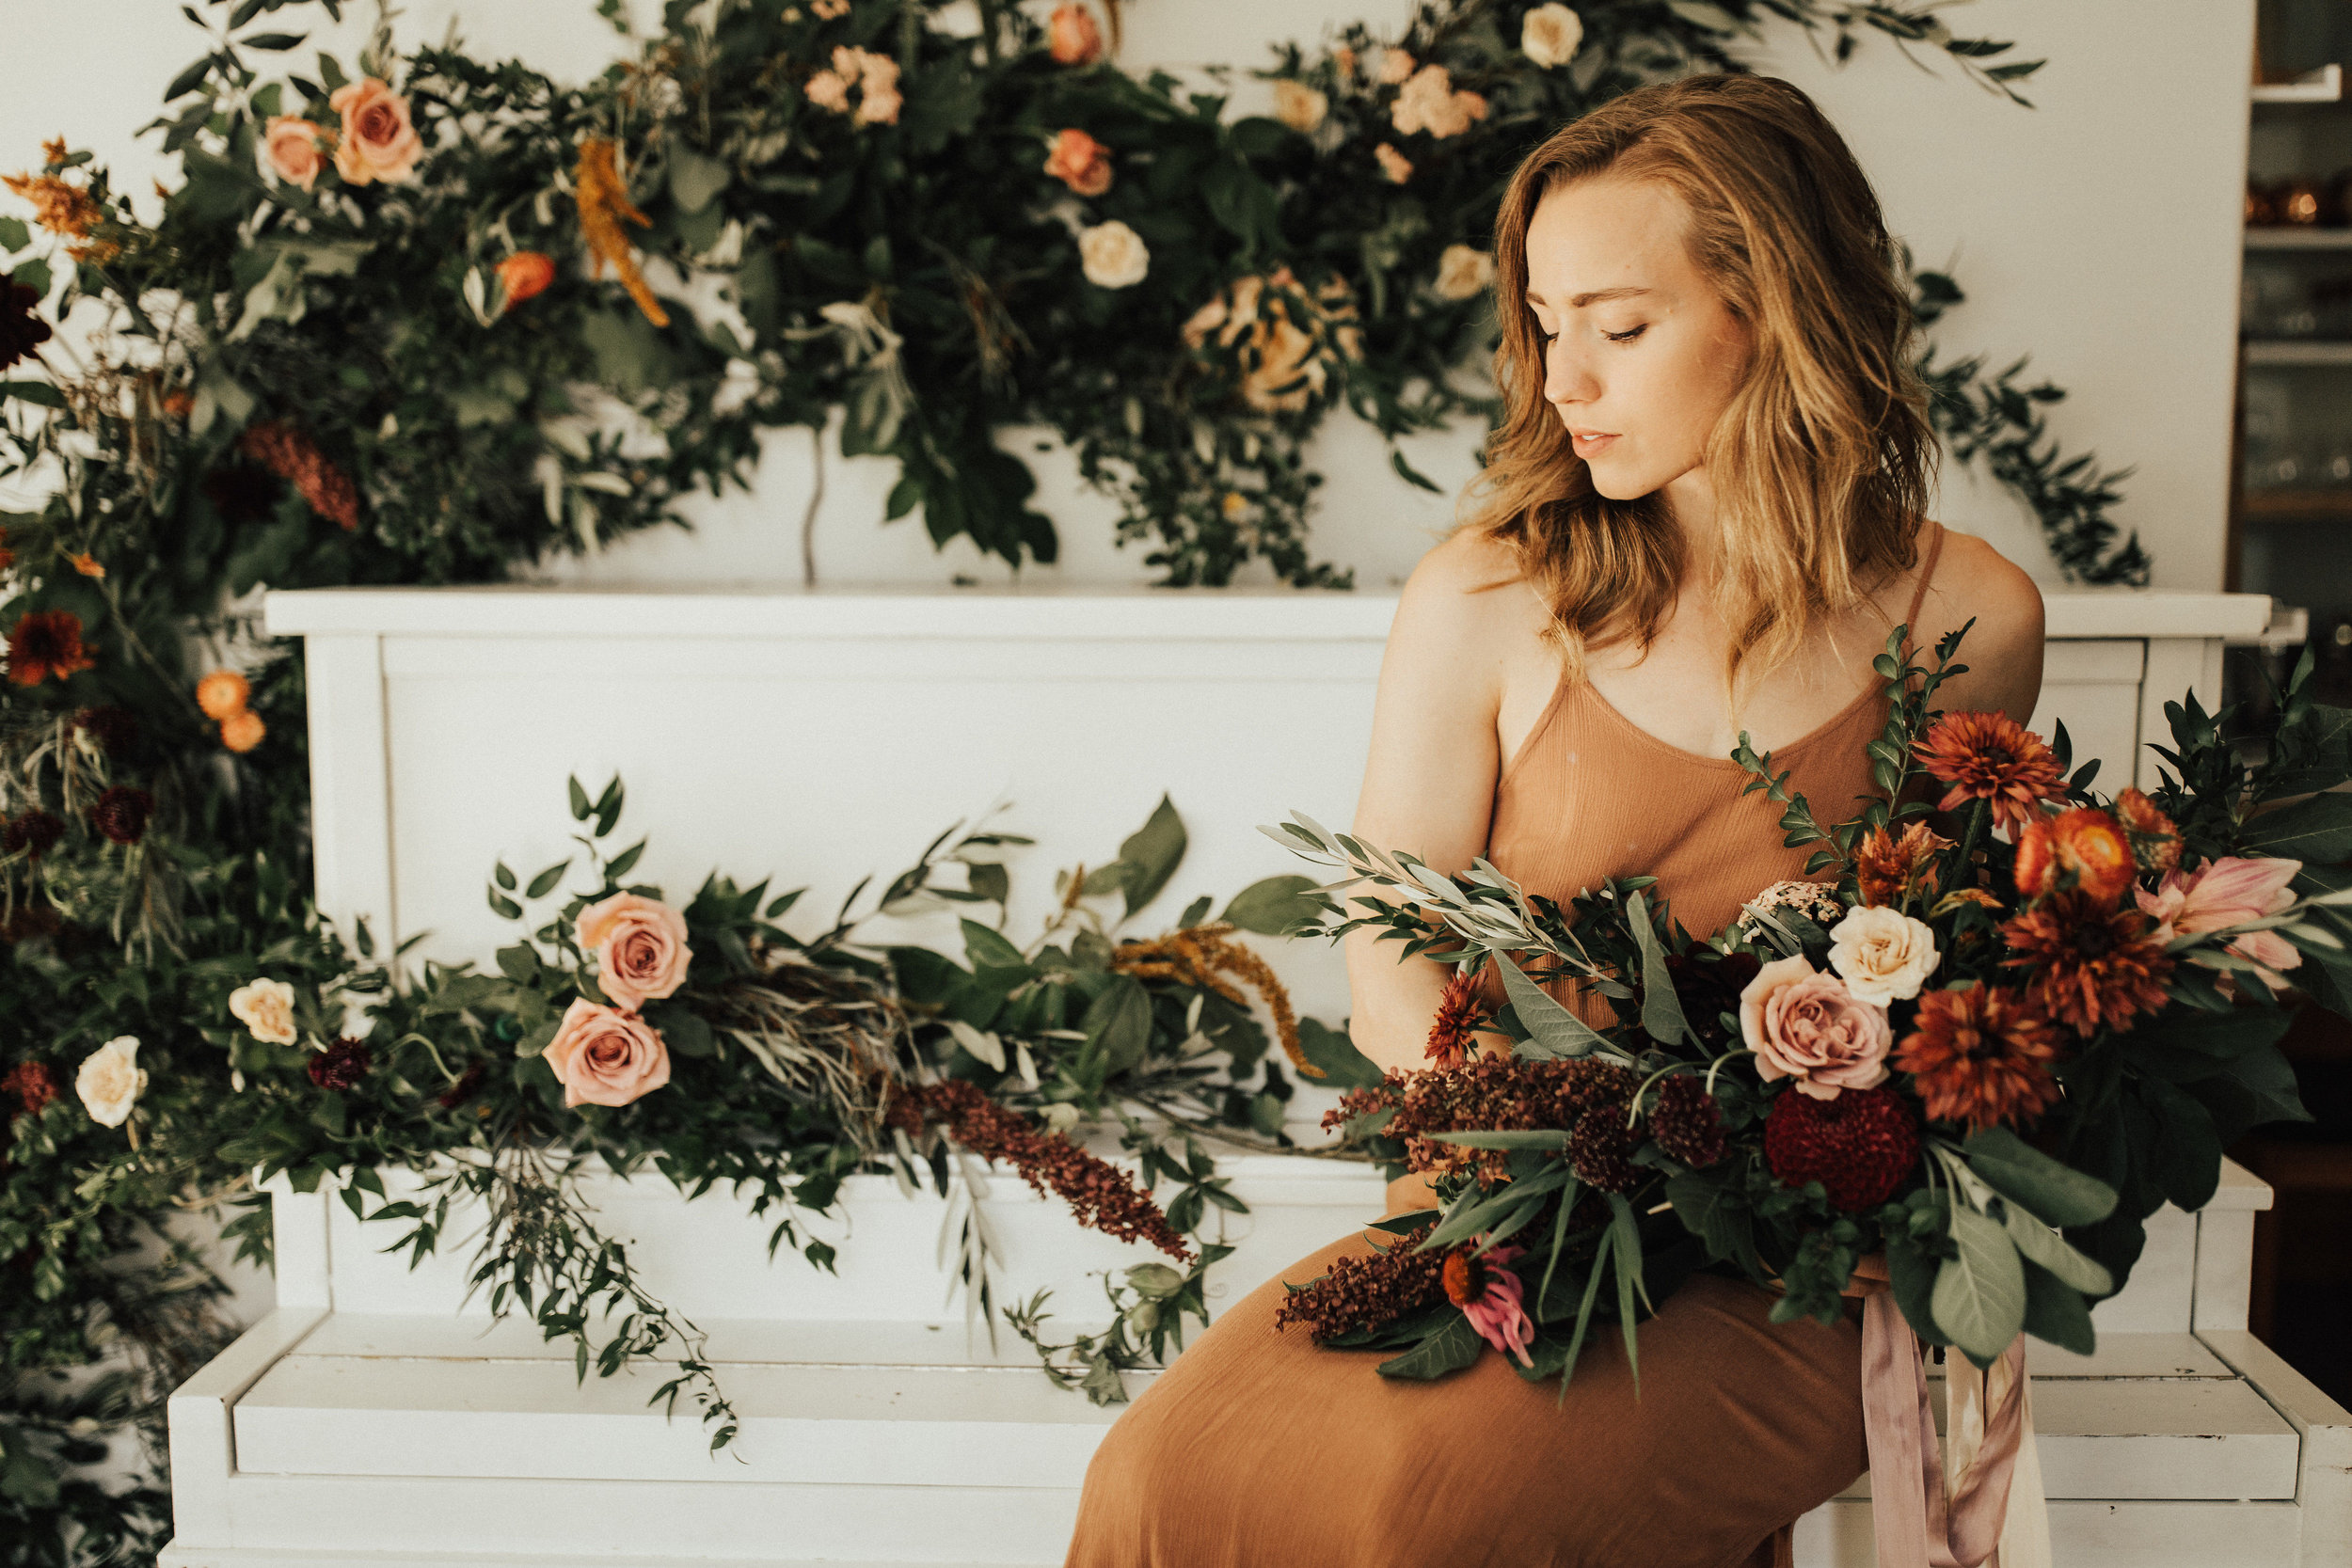 modeling with flowers